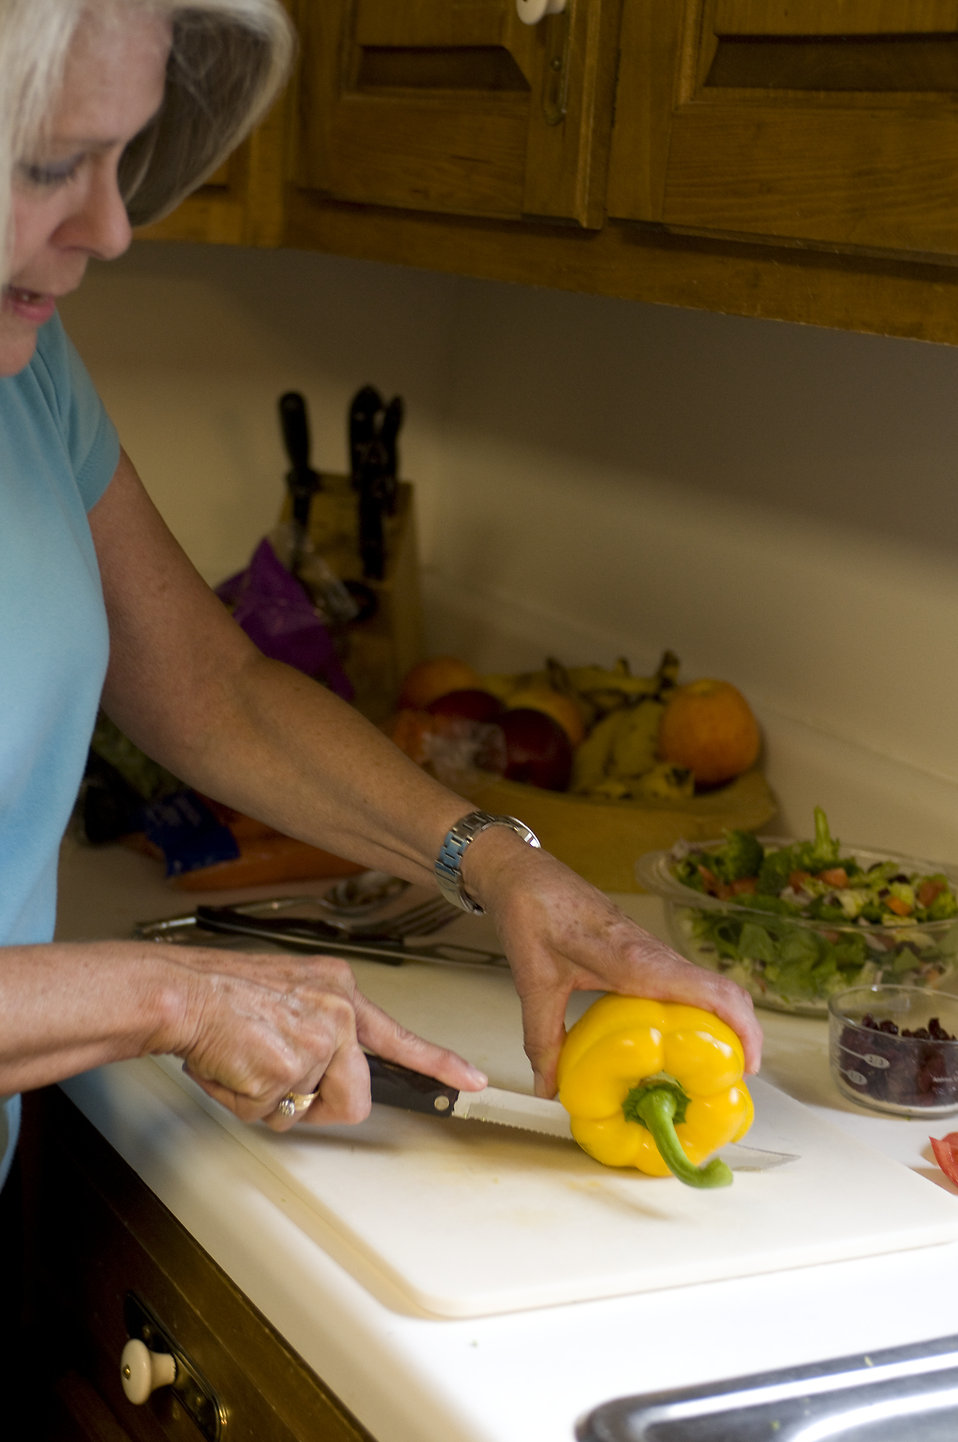 A woman preparing a salad in her kitchen : Free Stock Photo